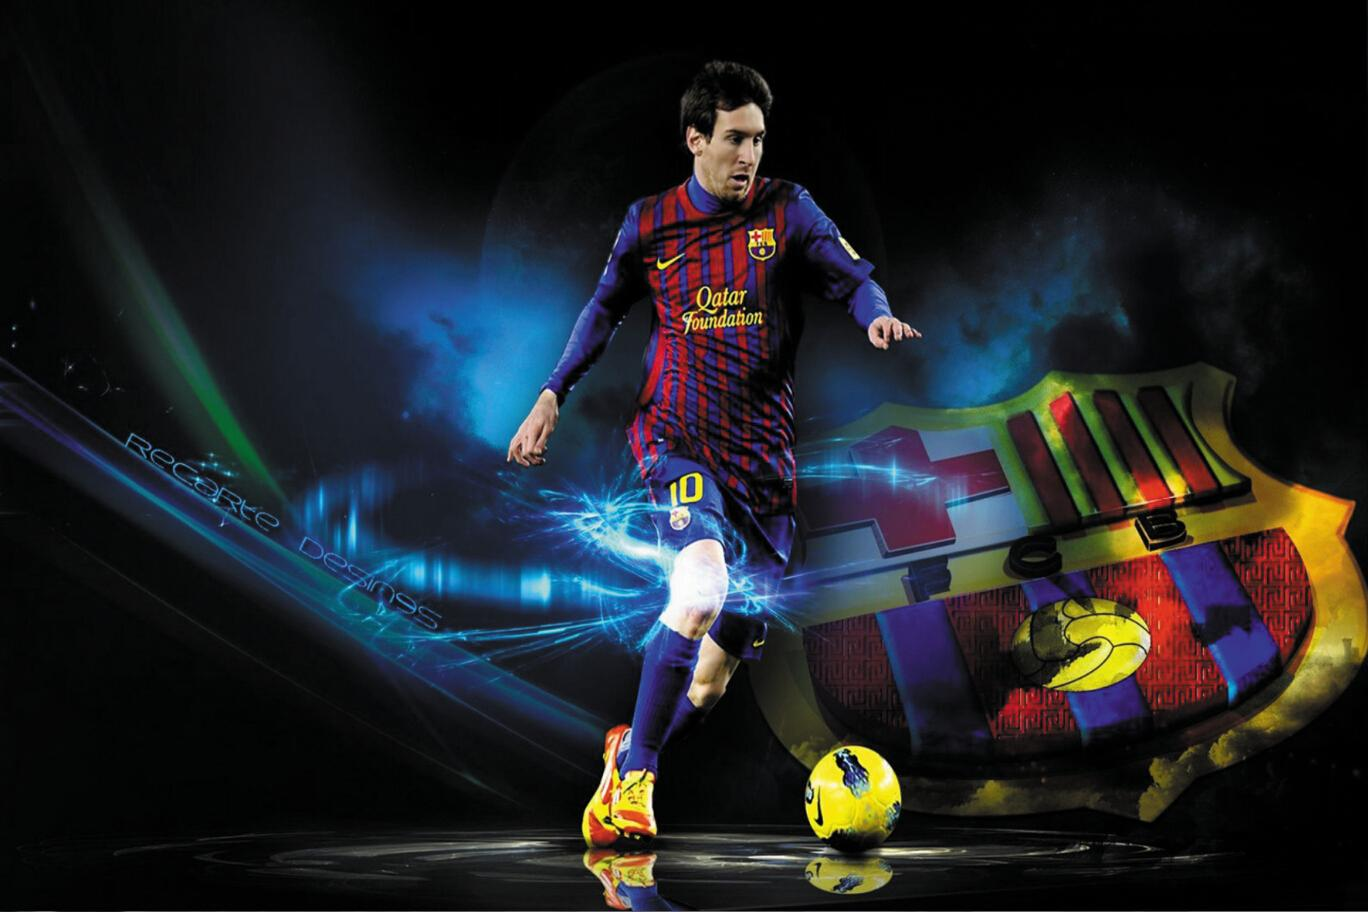 Home Decor Wholesale Online 24x35inch Football Star Lionel Messi Poster Hd Home Wall